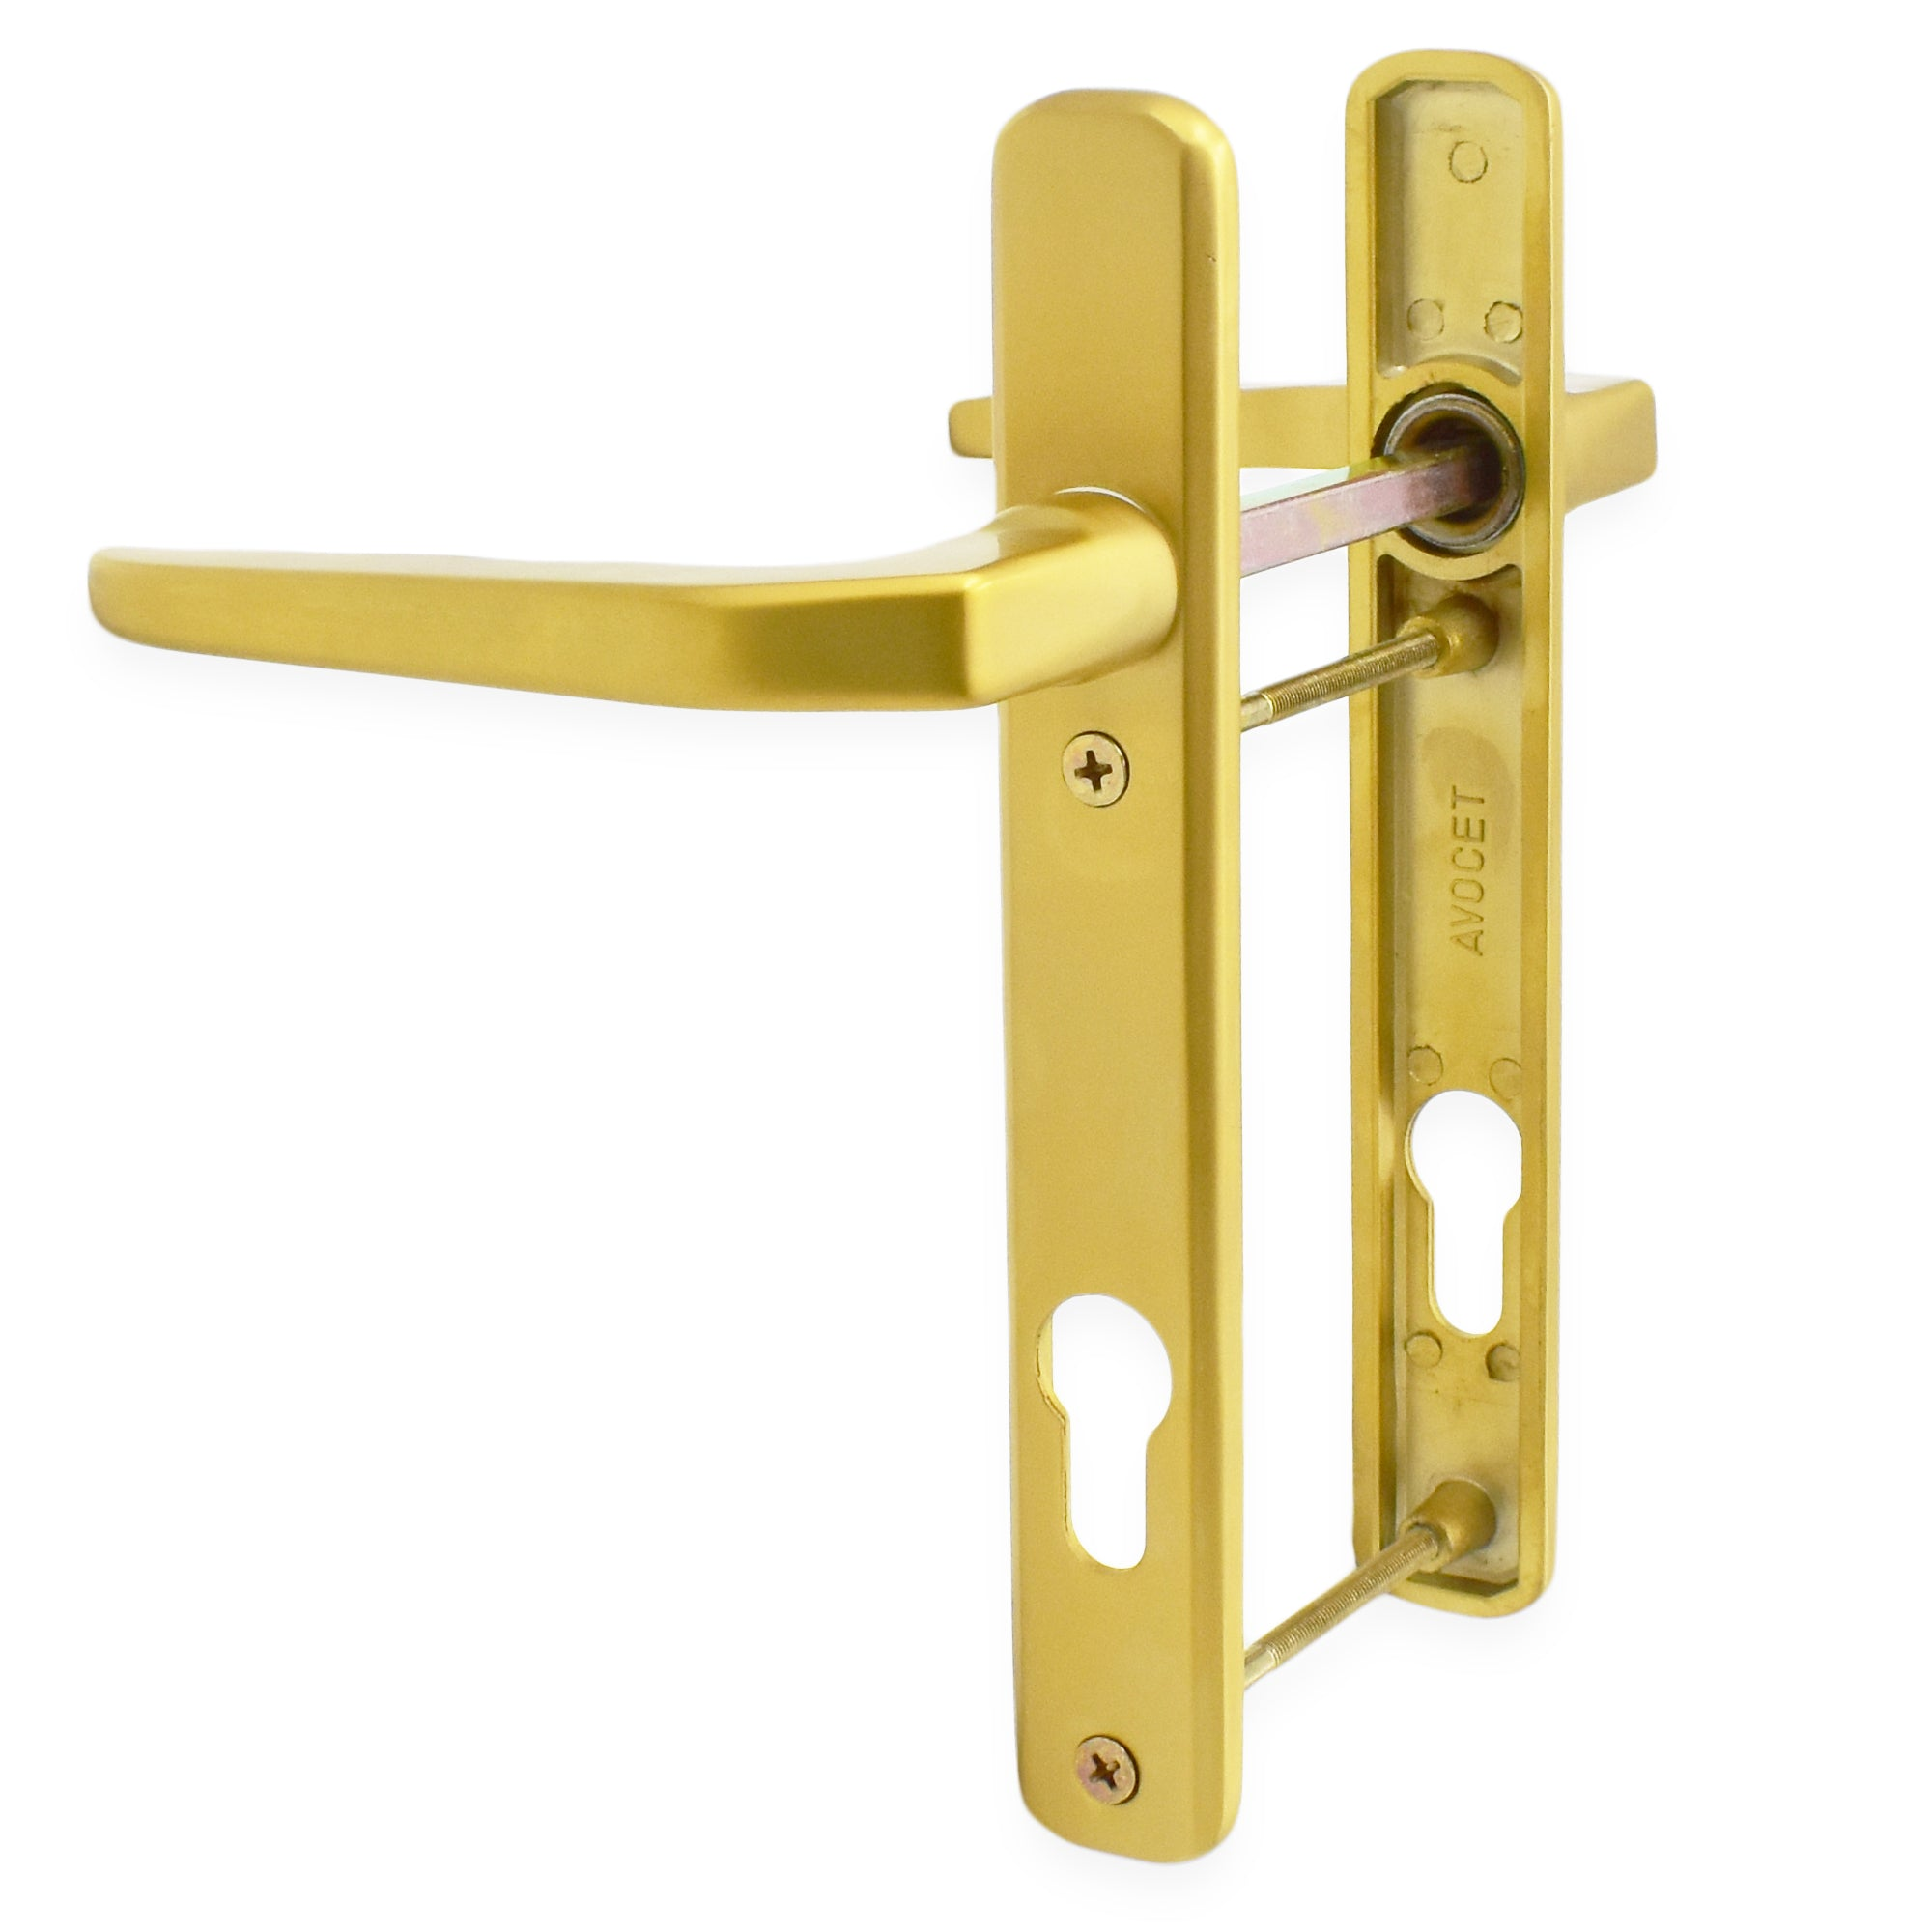 Avocet/WMS Gold Short Backplate Handles 92mm centre handle 122mm screw centres -  - Avocet - UPVCSTORE